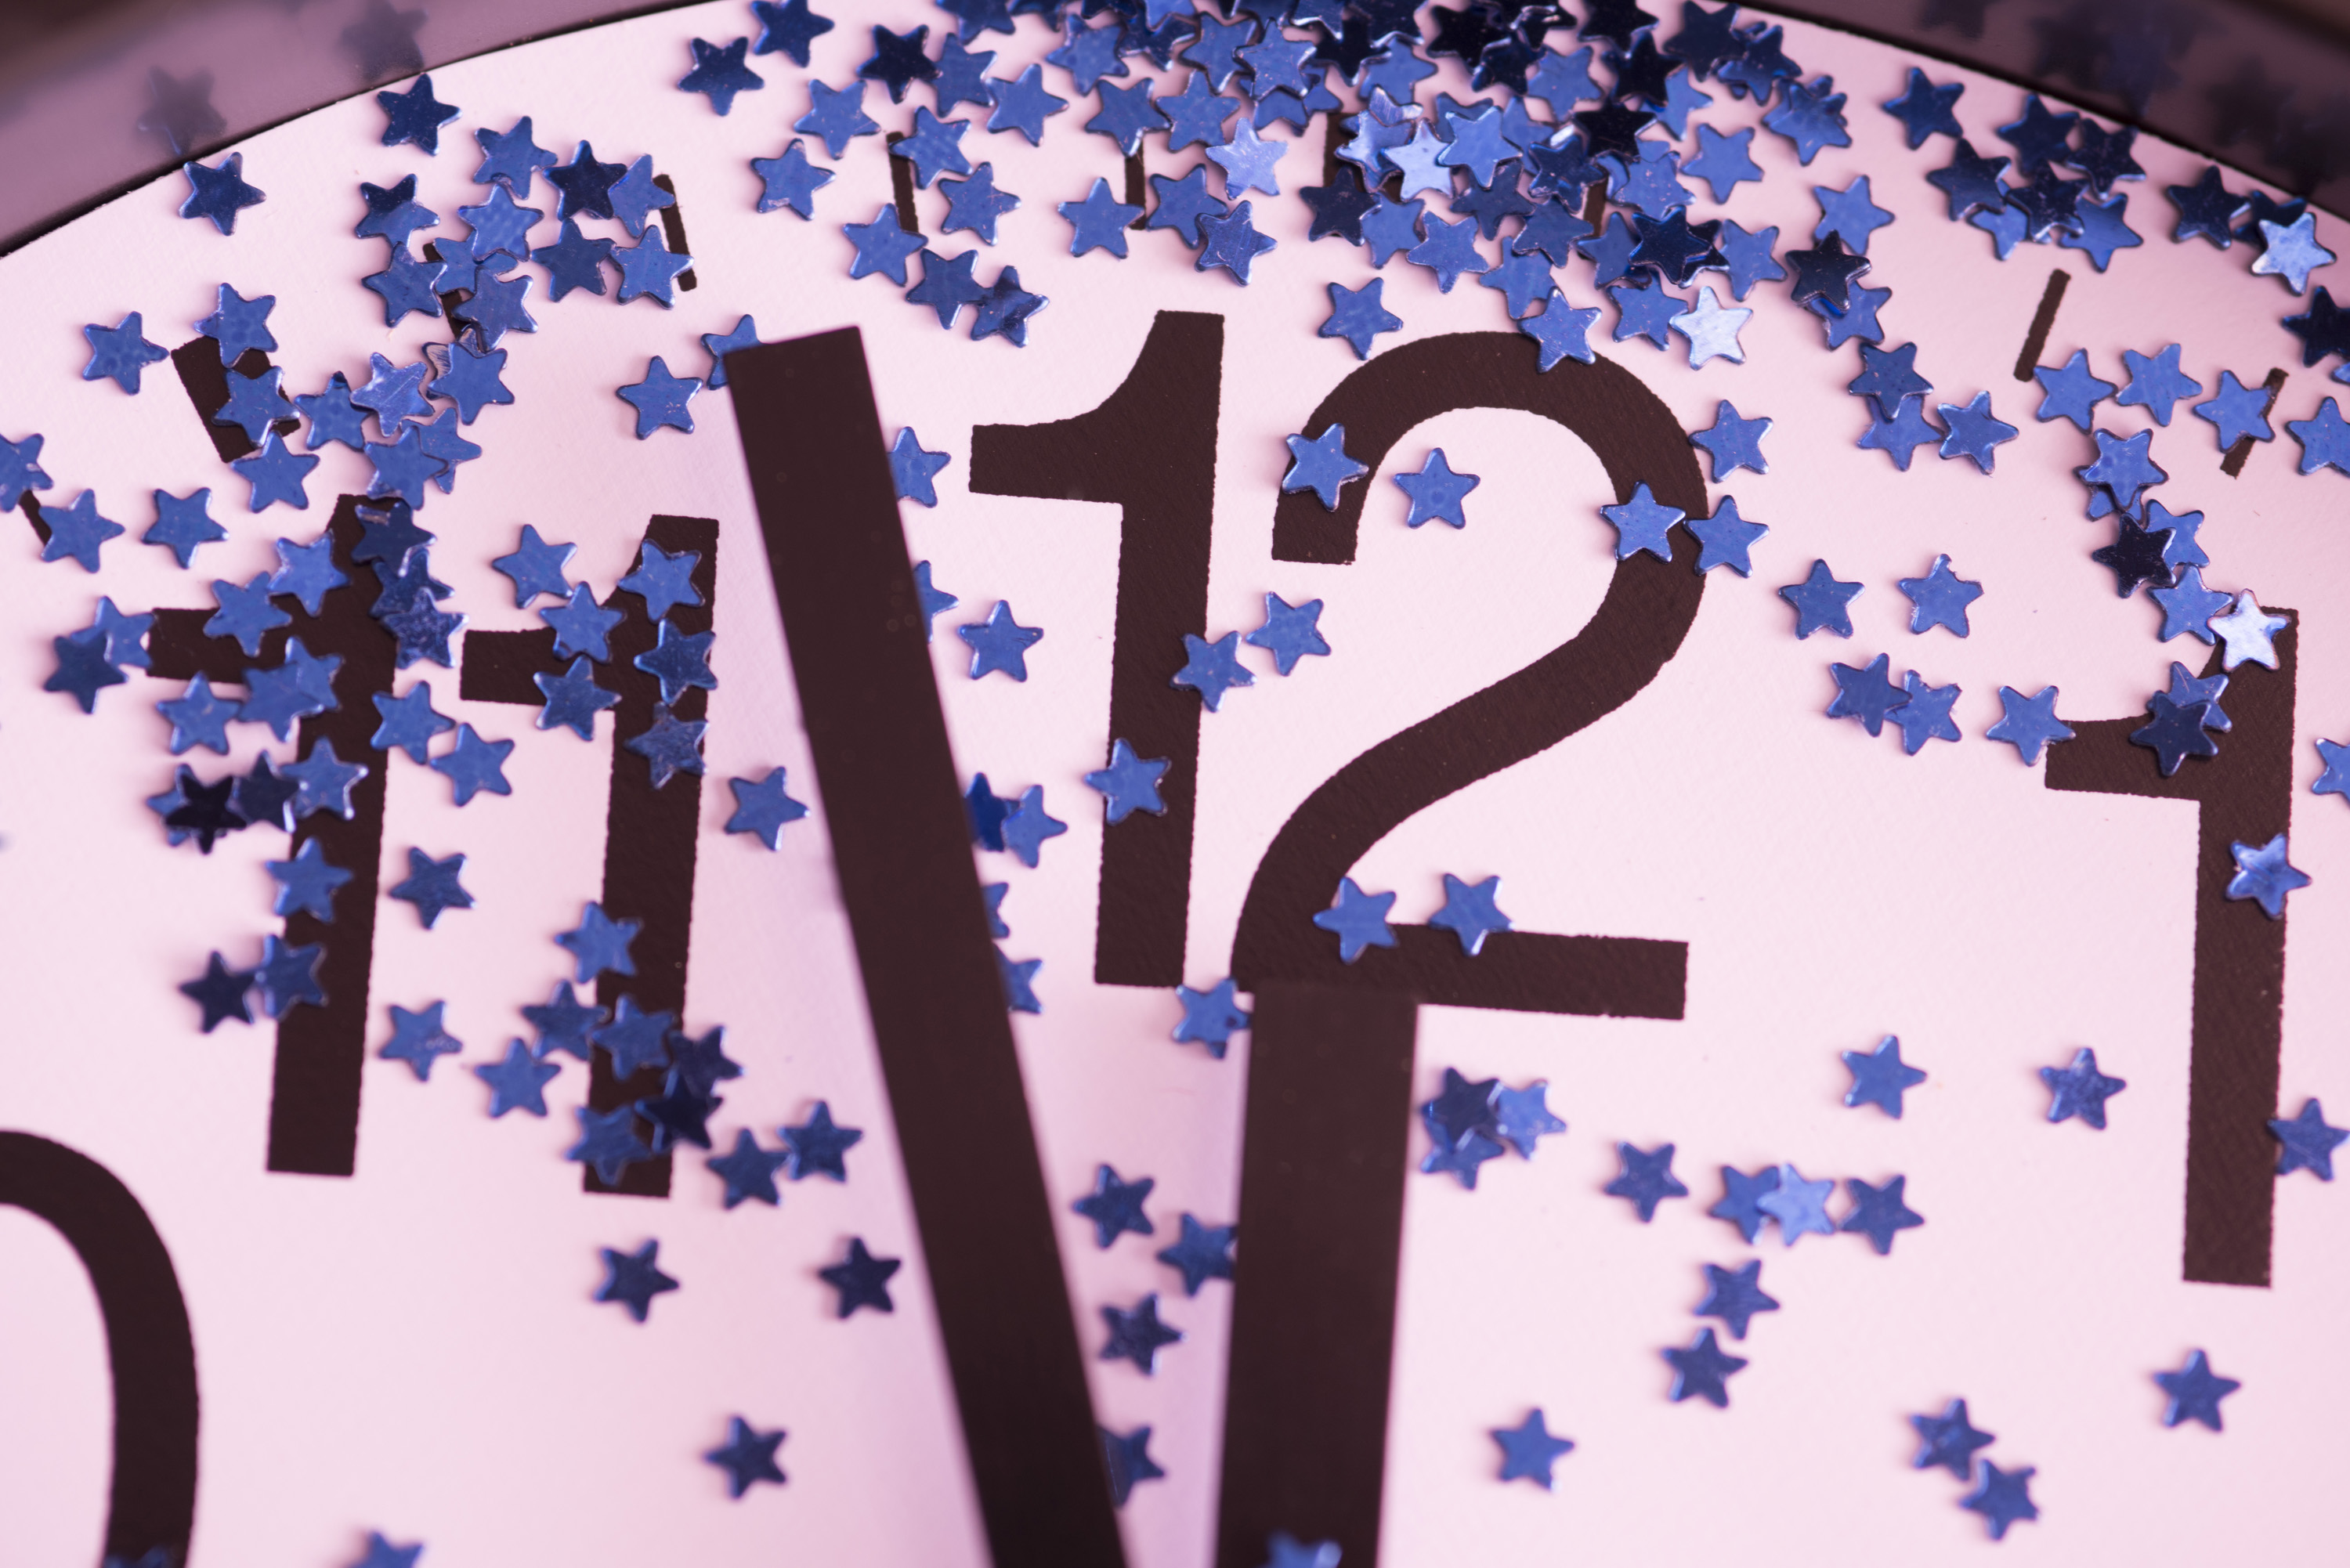 Countdown to midnight on New Years Eve with a close up view of a clock dial decorated with stars with the hands approaching the twelve